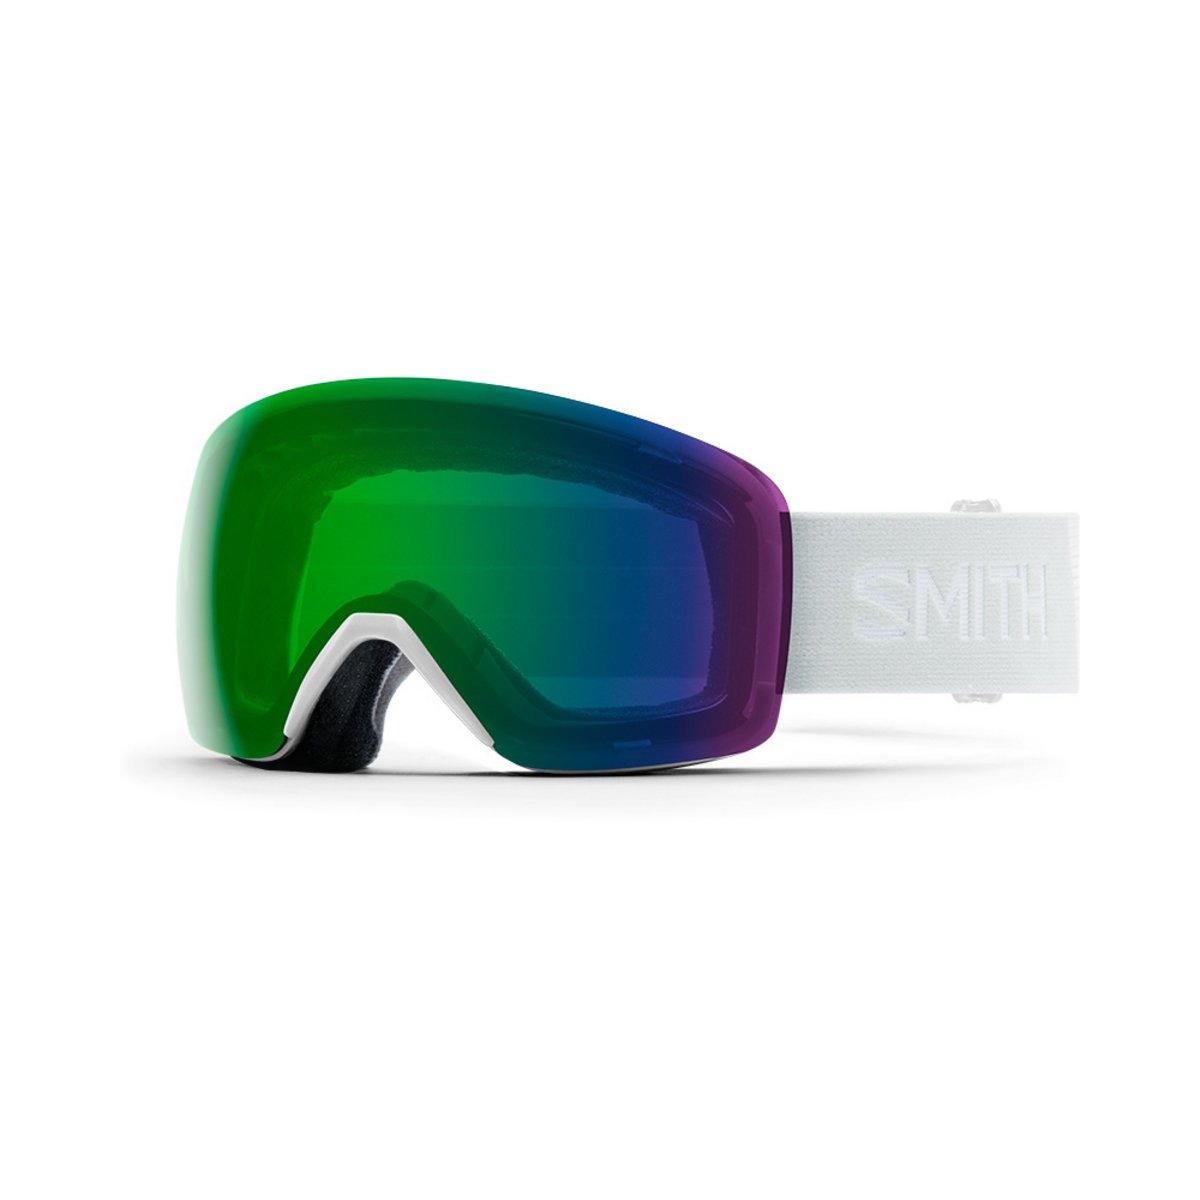 Smith Women's Skyline White Vapor / ChromaPop Everyday Green Mirror Goggles 2019 / 2020 0